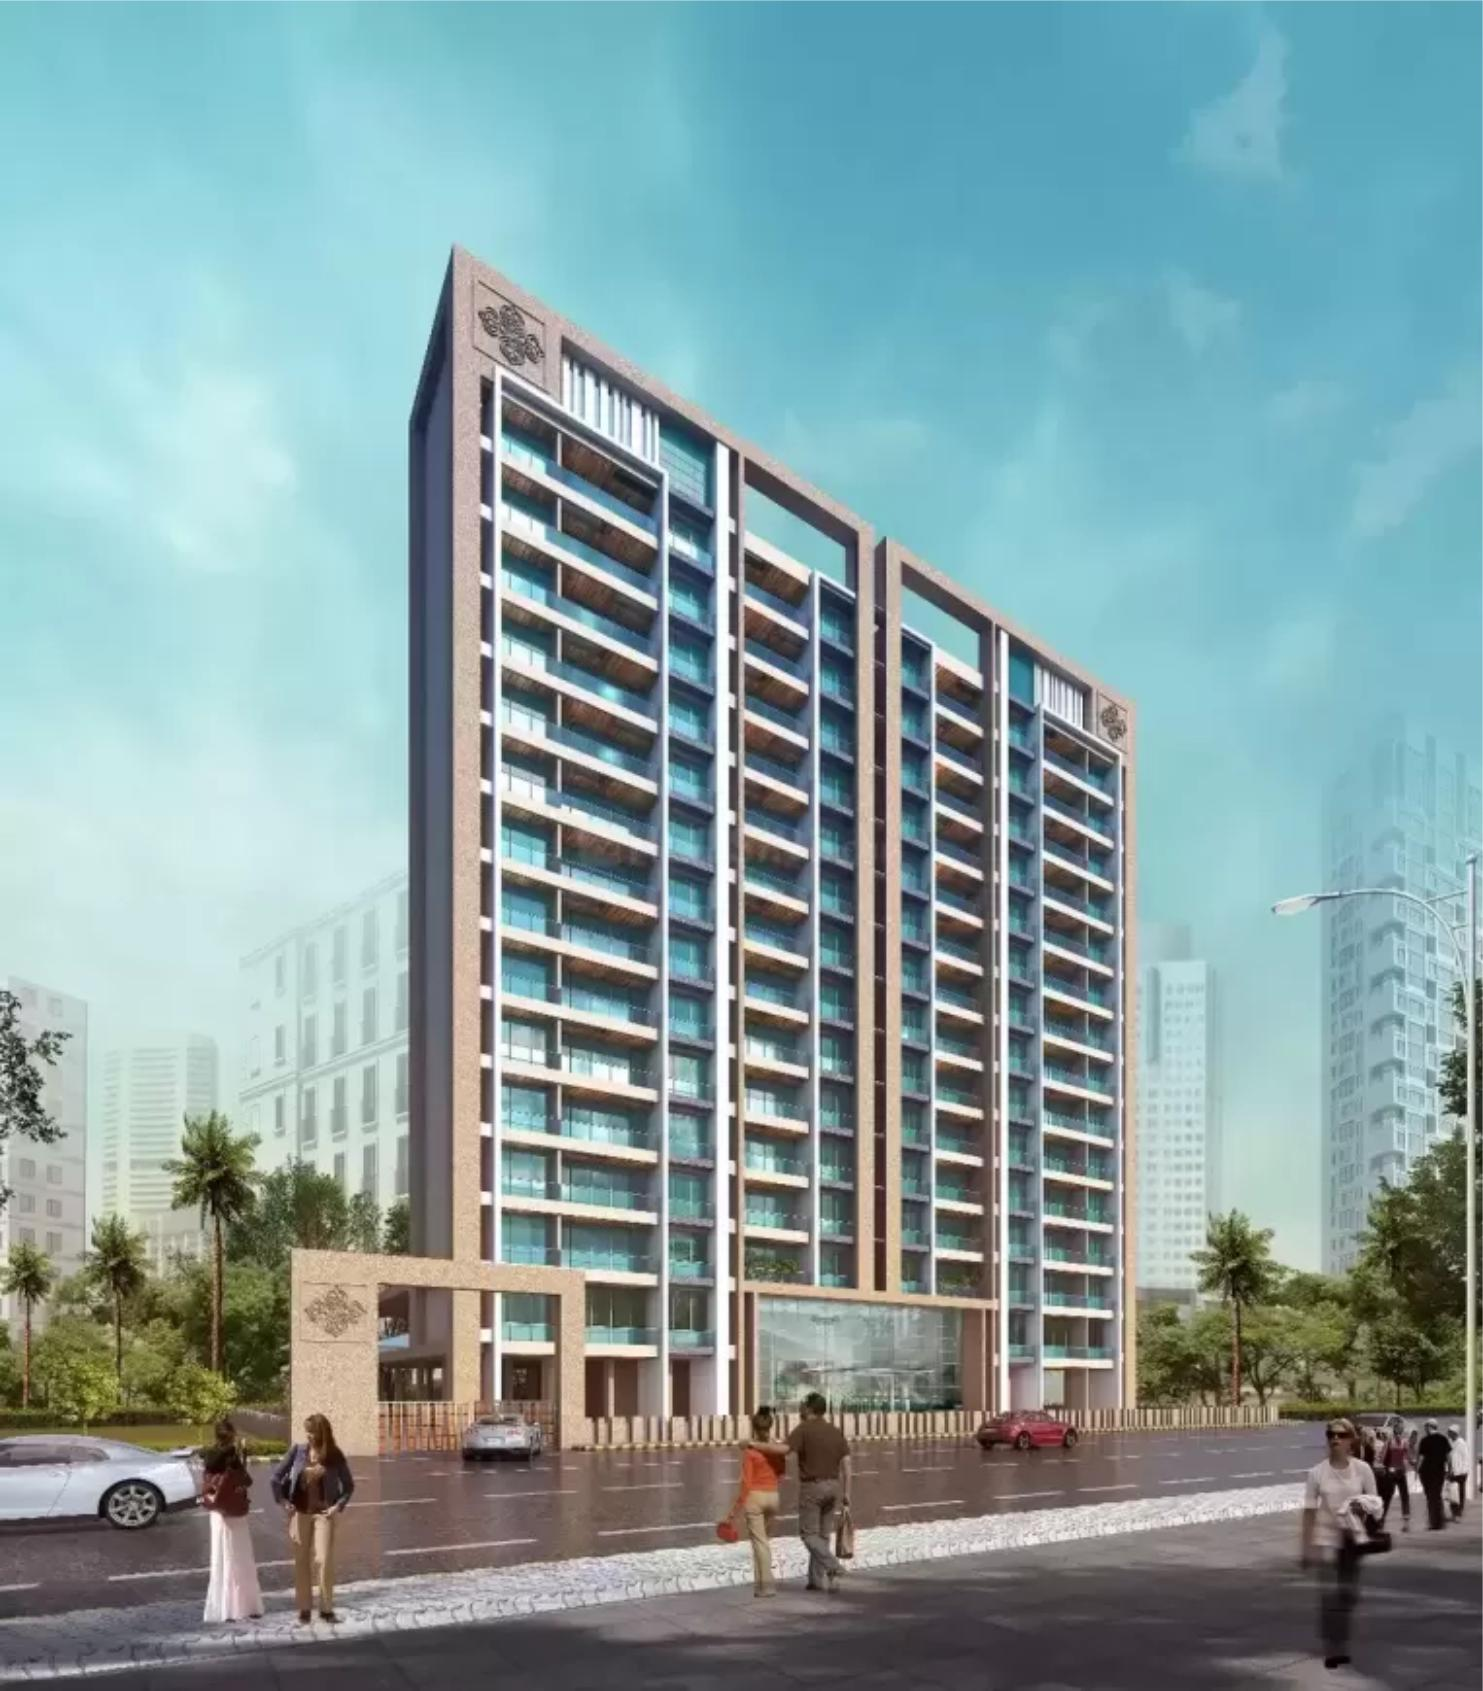 2 & 3 BHK Flats in Seawoods, Navi Mumbai in Platinum Crescenzo